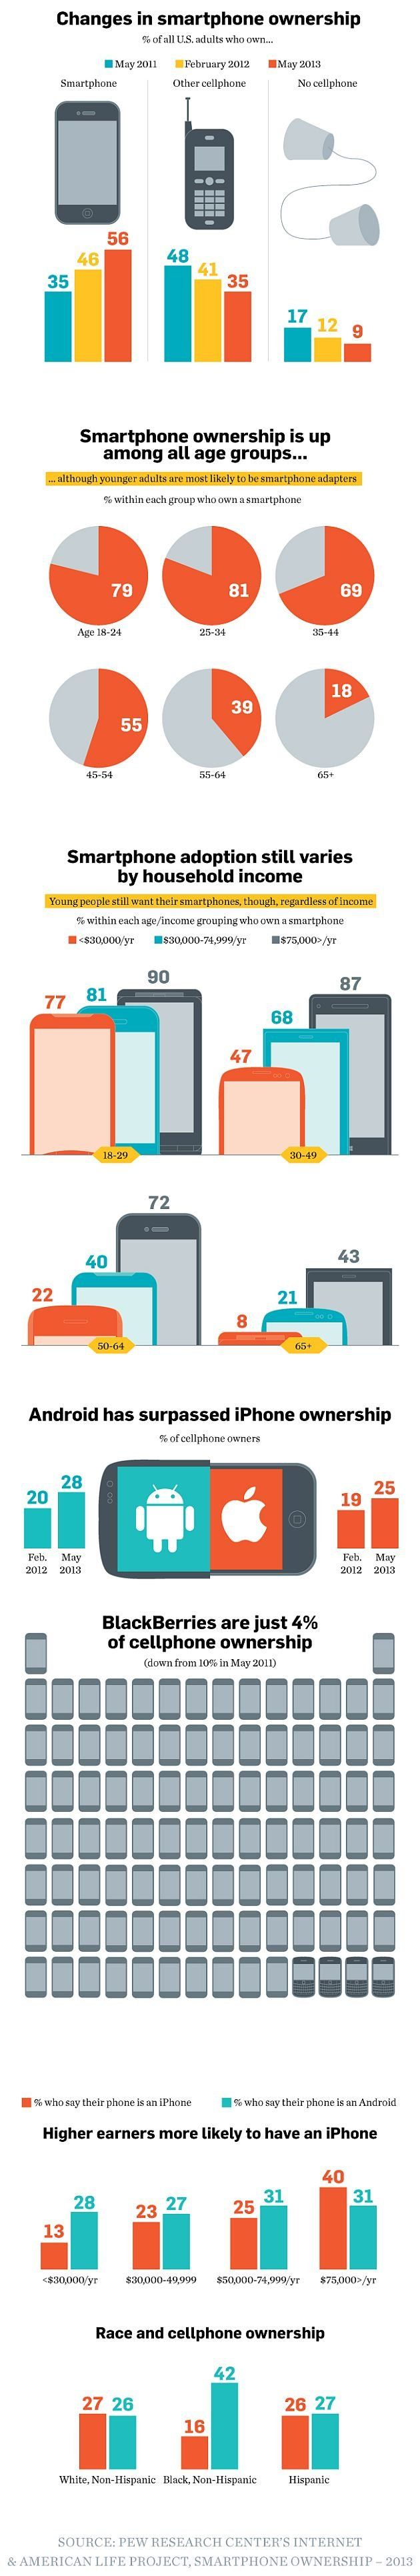 Infographic: The Demographics of U.S. Smartphone Owners   Yahoo! Advertising Solutions - Yahoo News